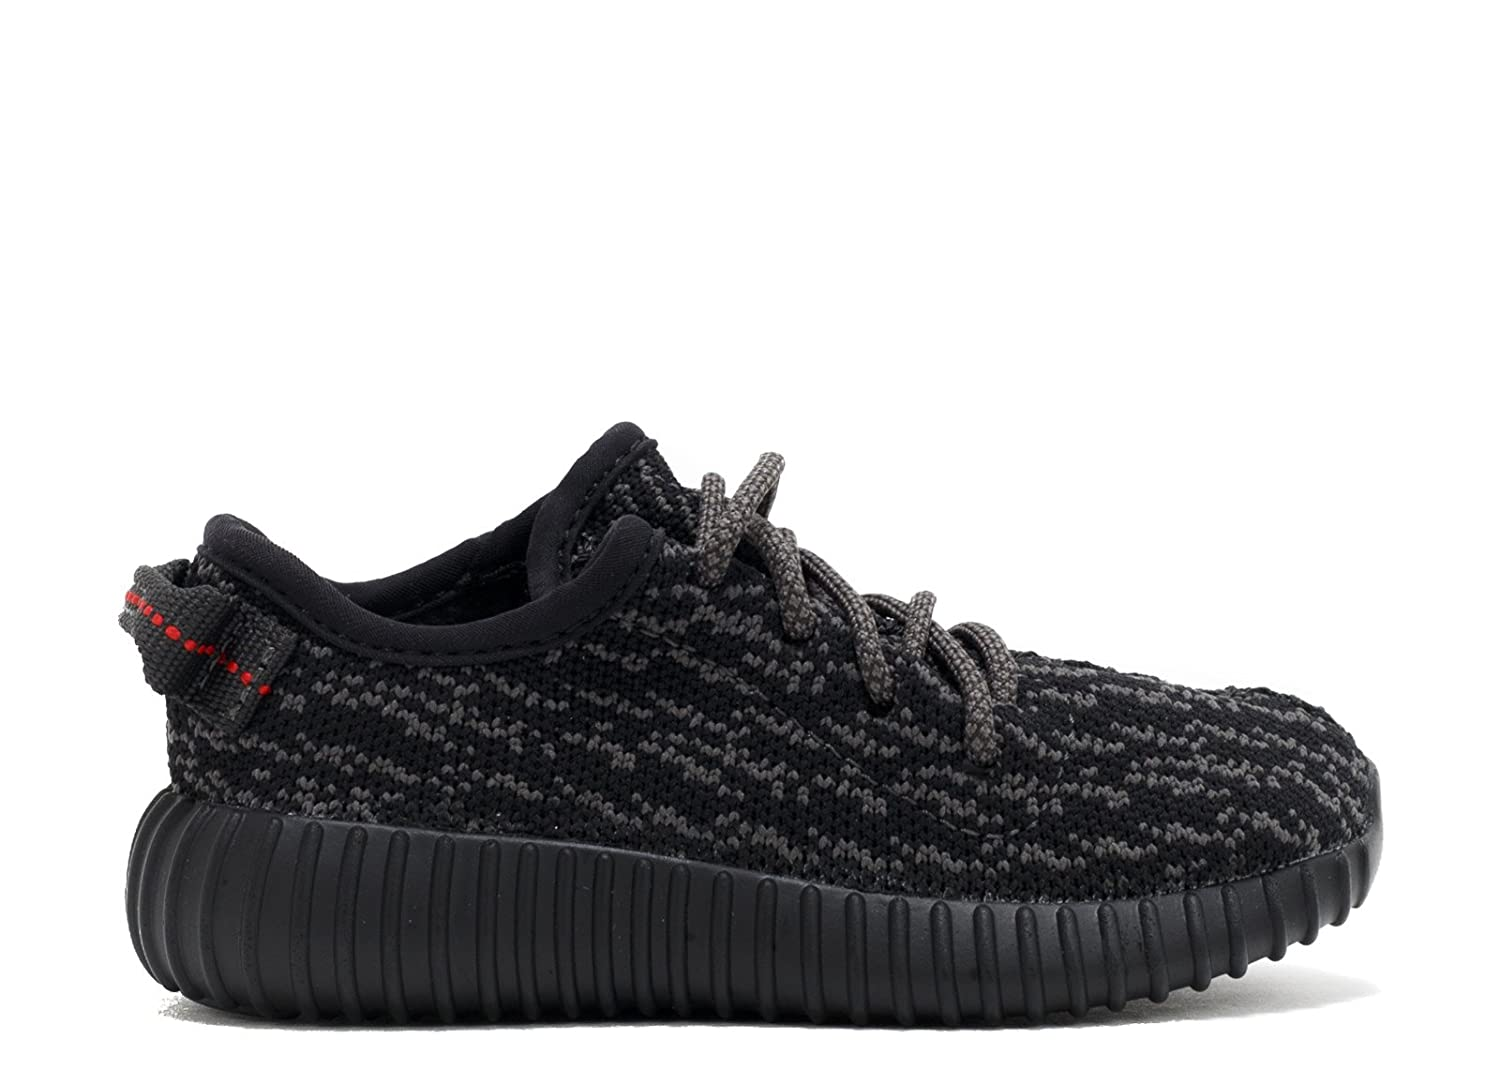 check out 3a066 d262e adidas Yeezy Boost 350 Infant 'Pirate Black' - BB5355